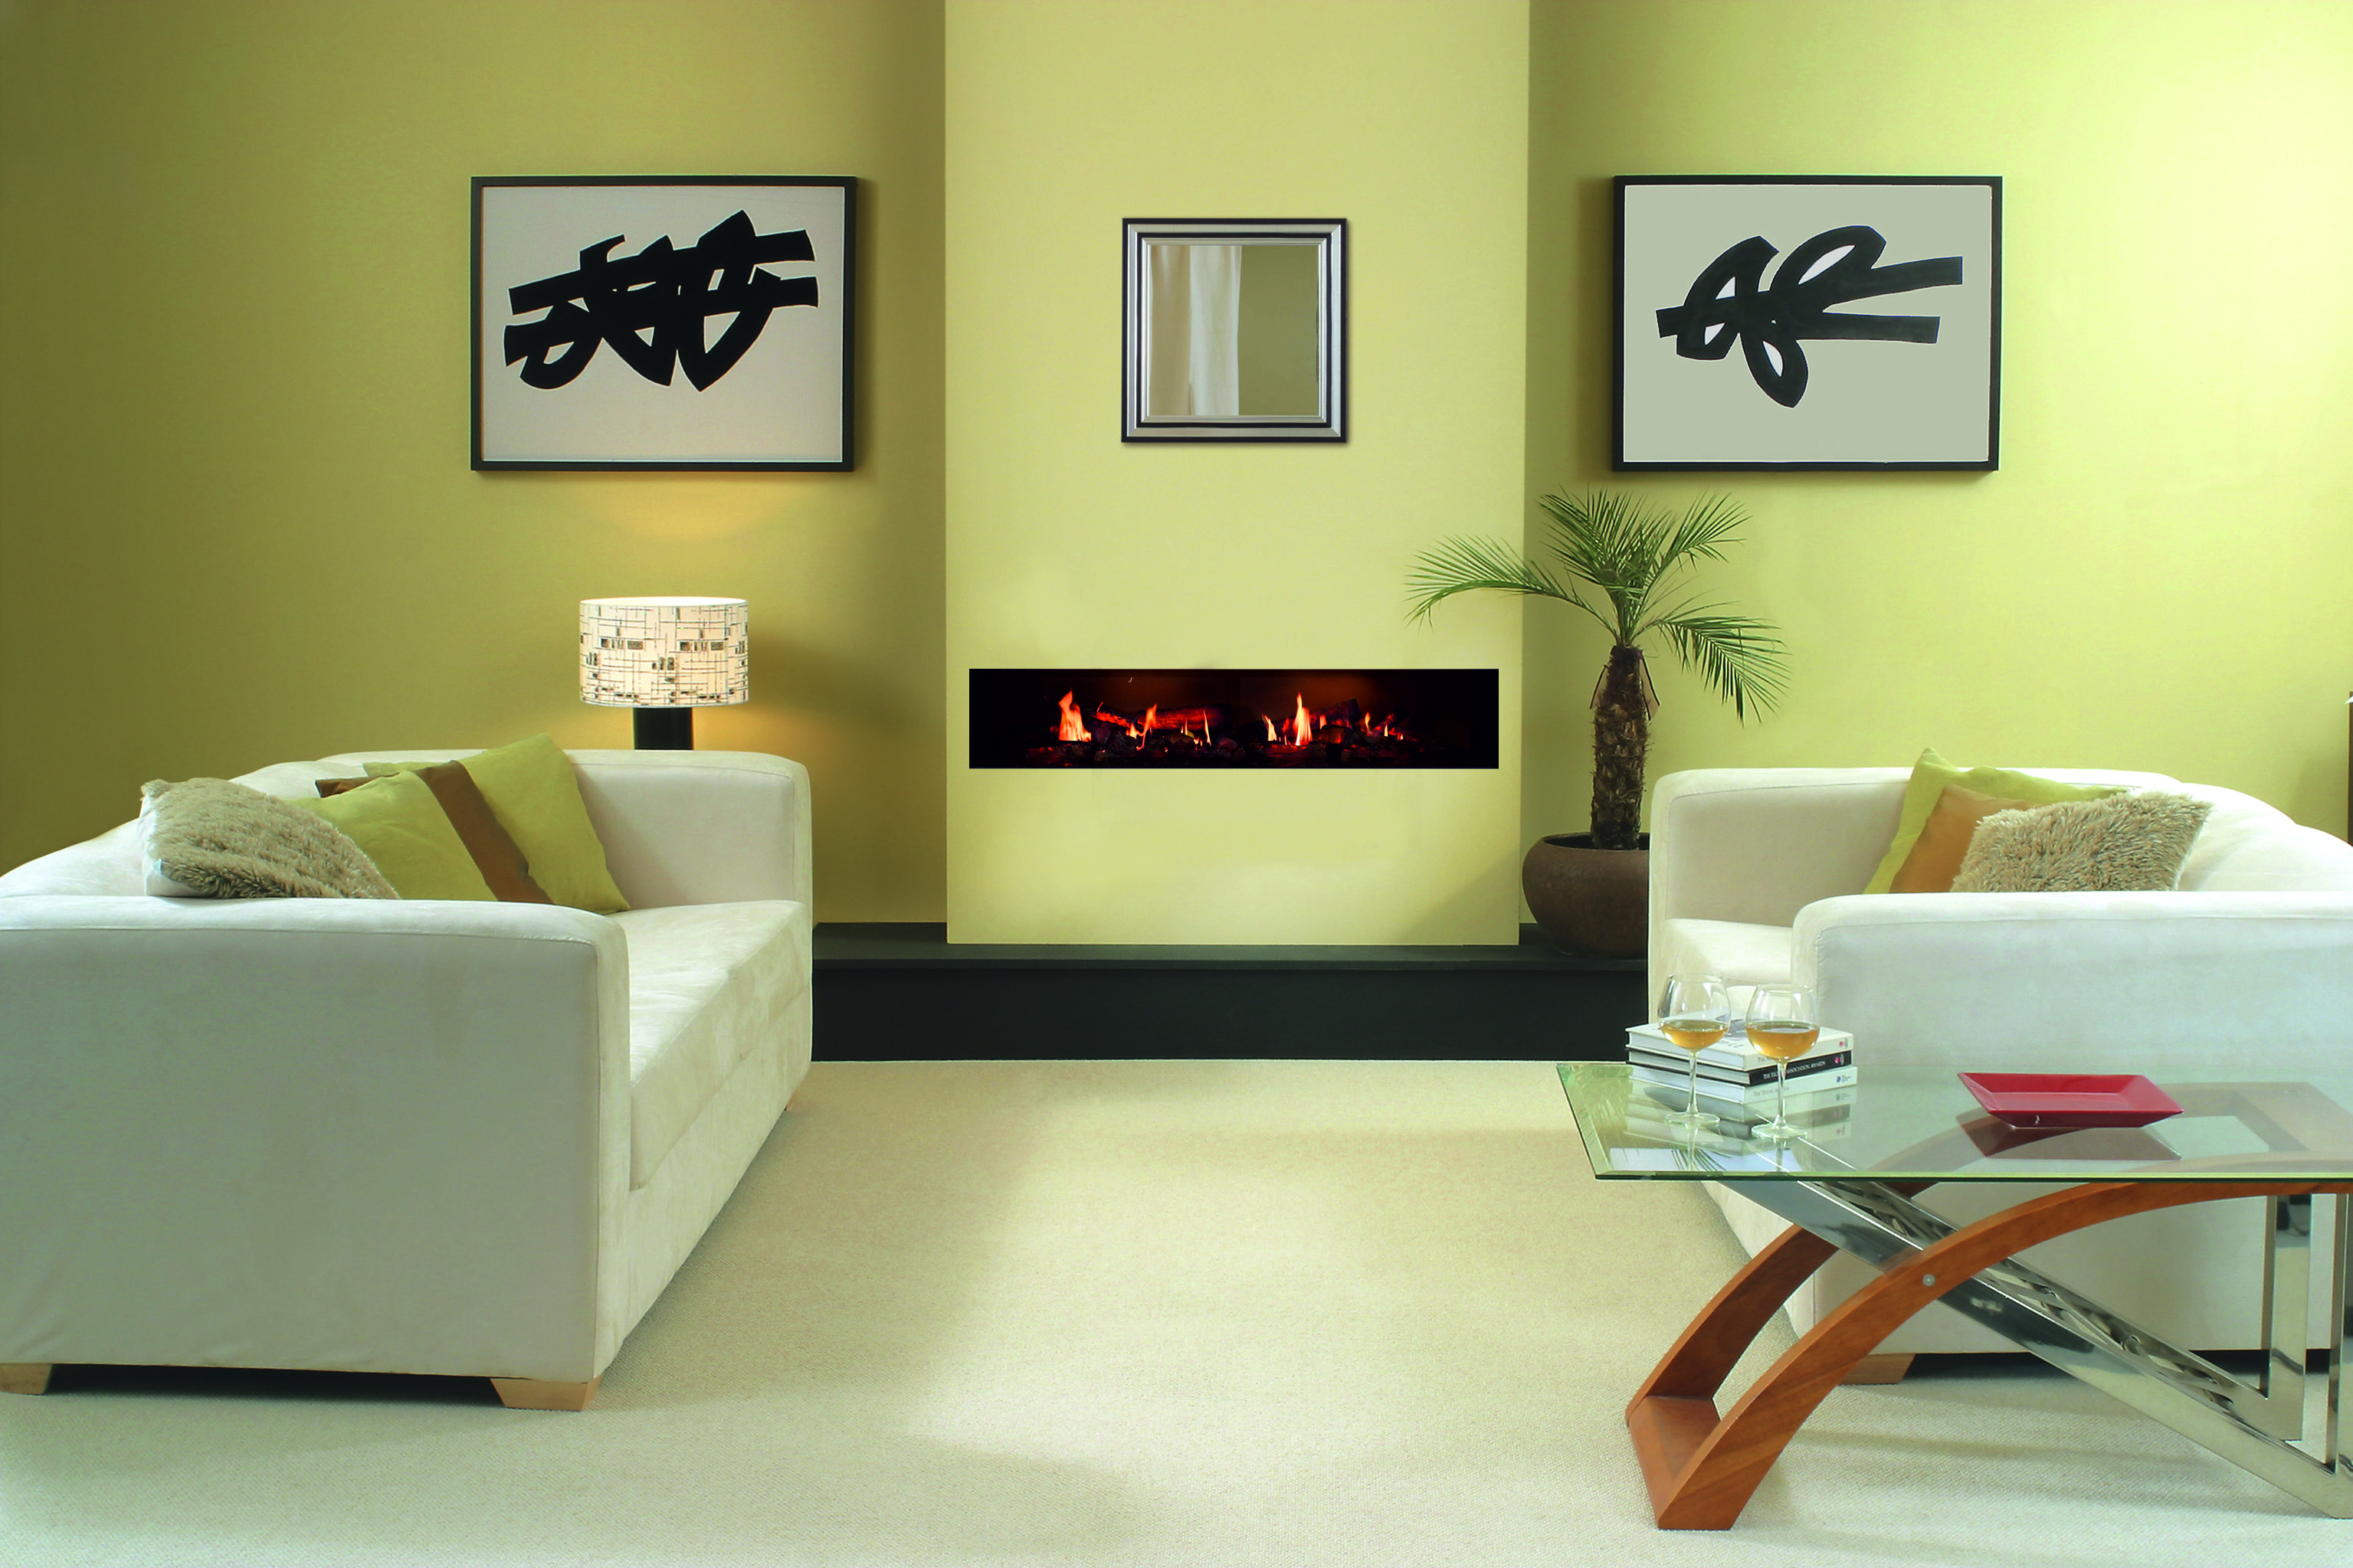 fireplace fires haard mounted meubel design tv bio sfeerhaard ruby ethanol eiken pin wall